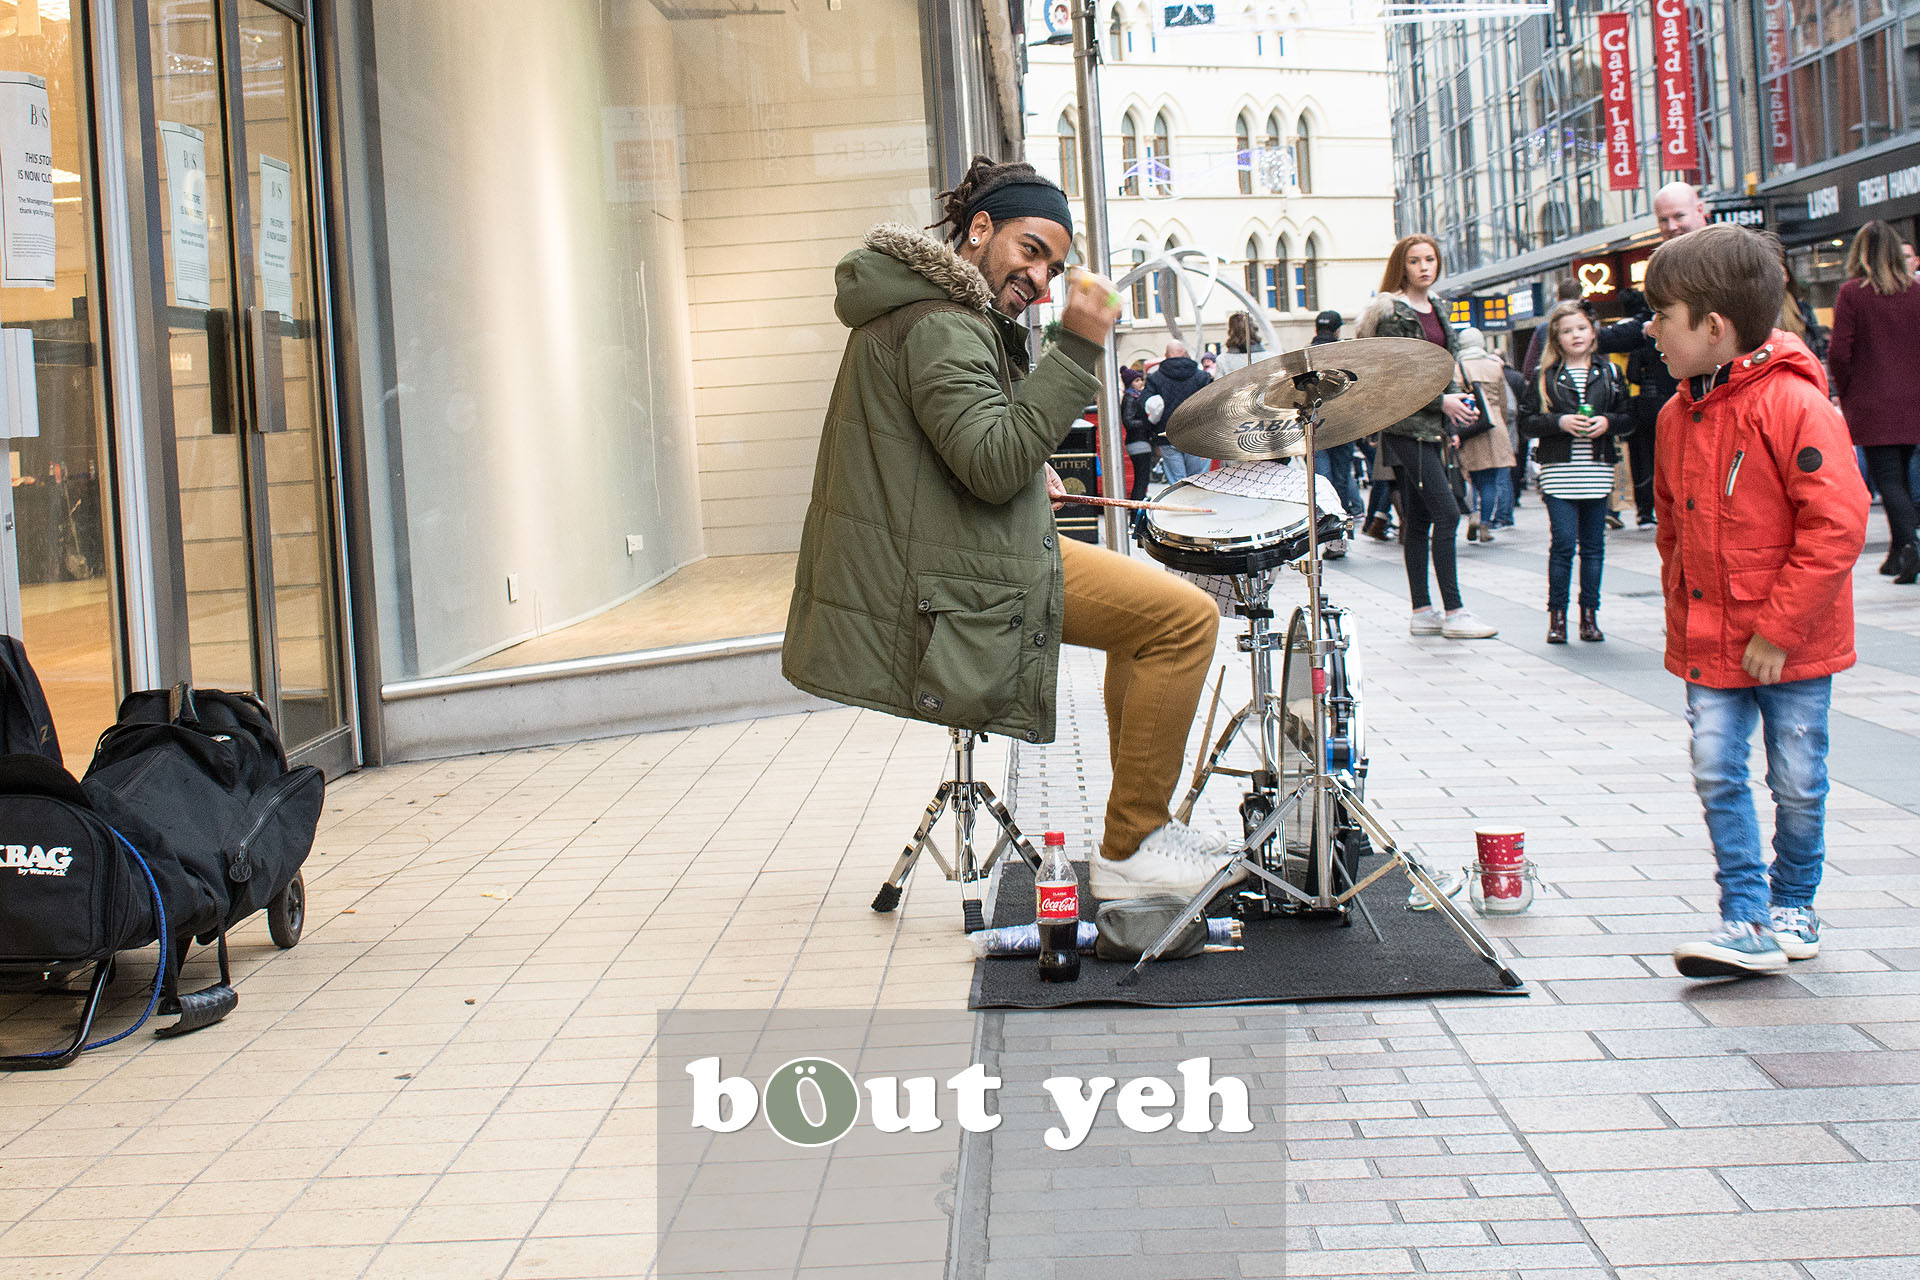 Busker from Brazil drumming in Belfast city centre. Photo 3231.